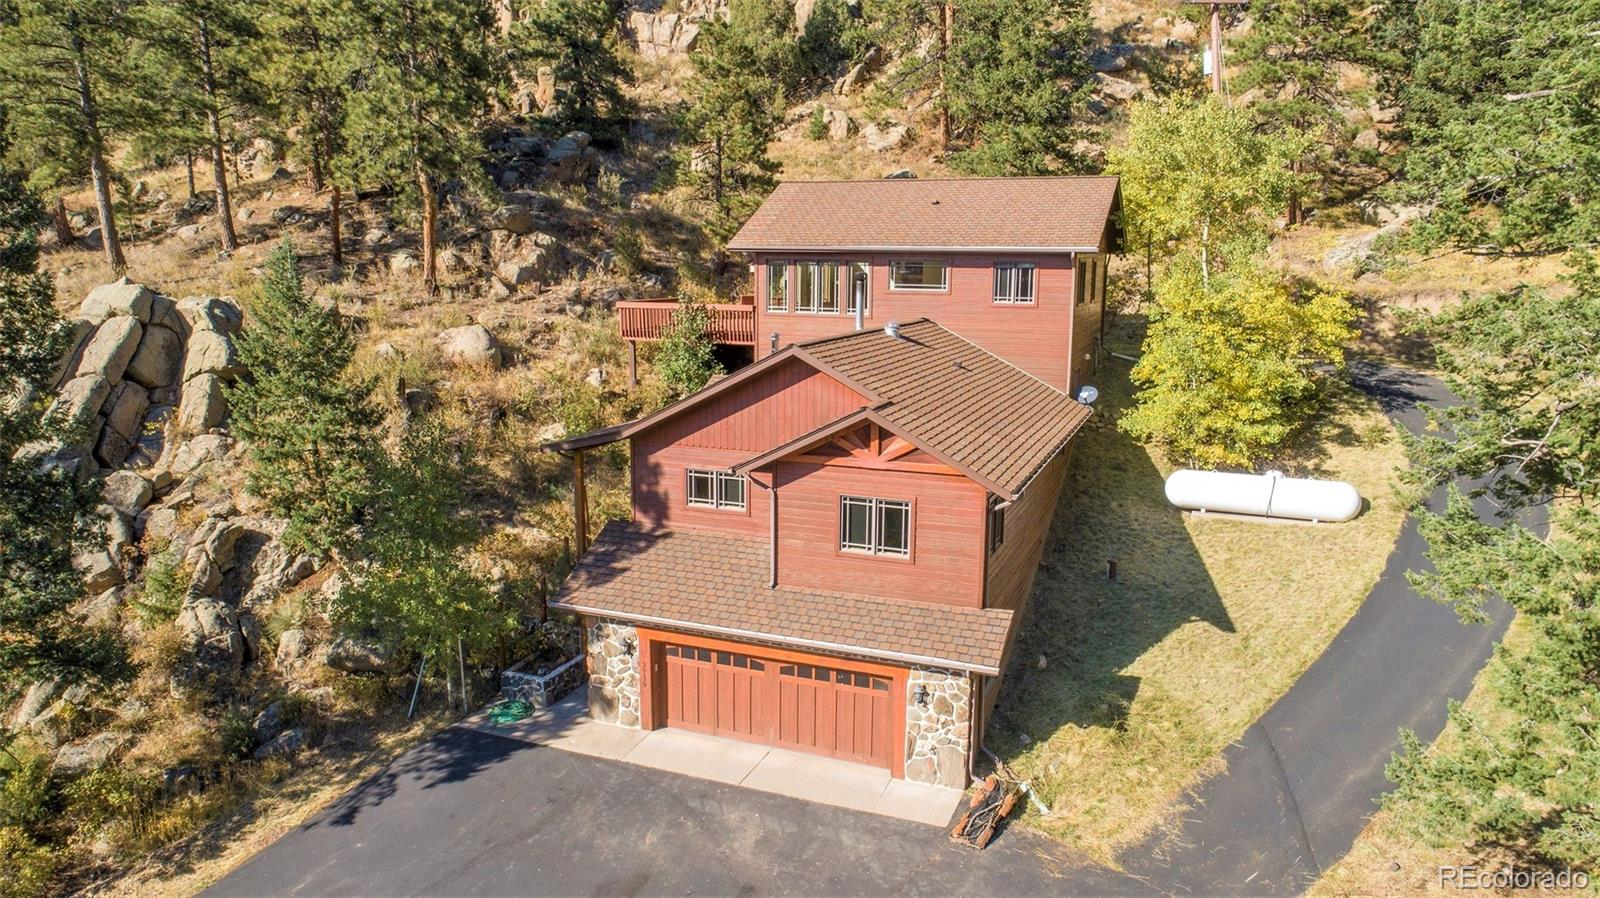 26129 Wild Flower Trail, Evergreen, CO 80439 - Evergreen, CO real estate listing